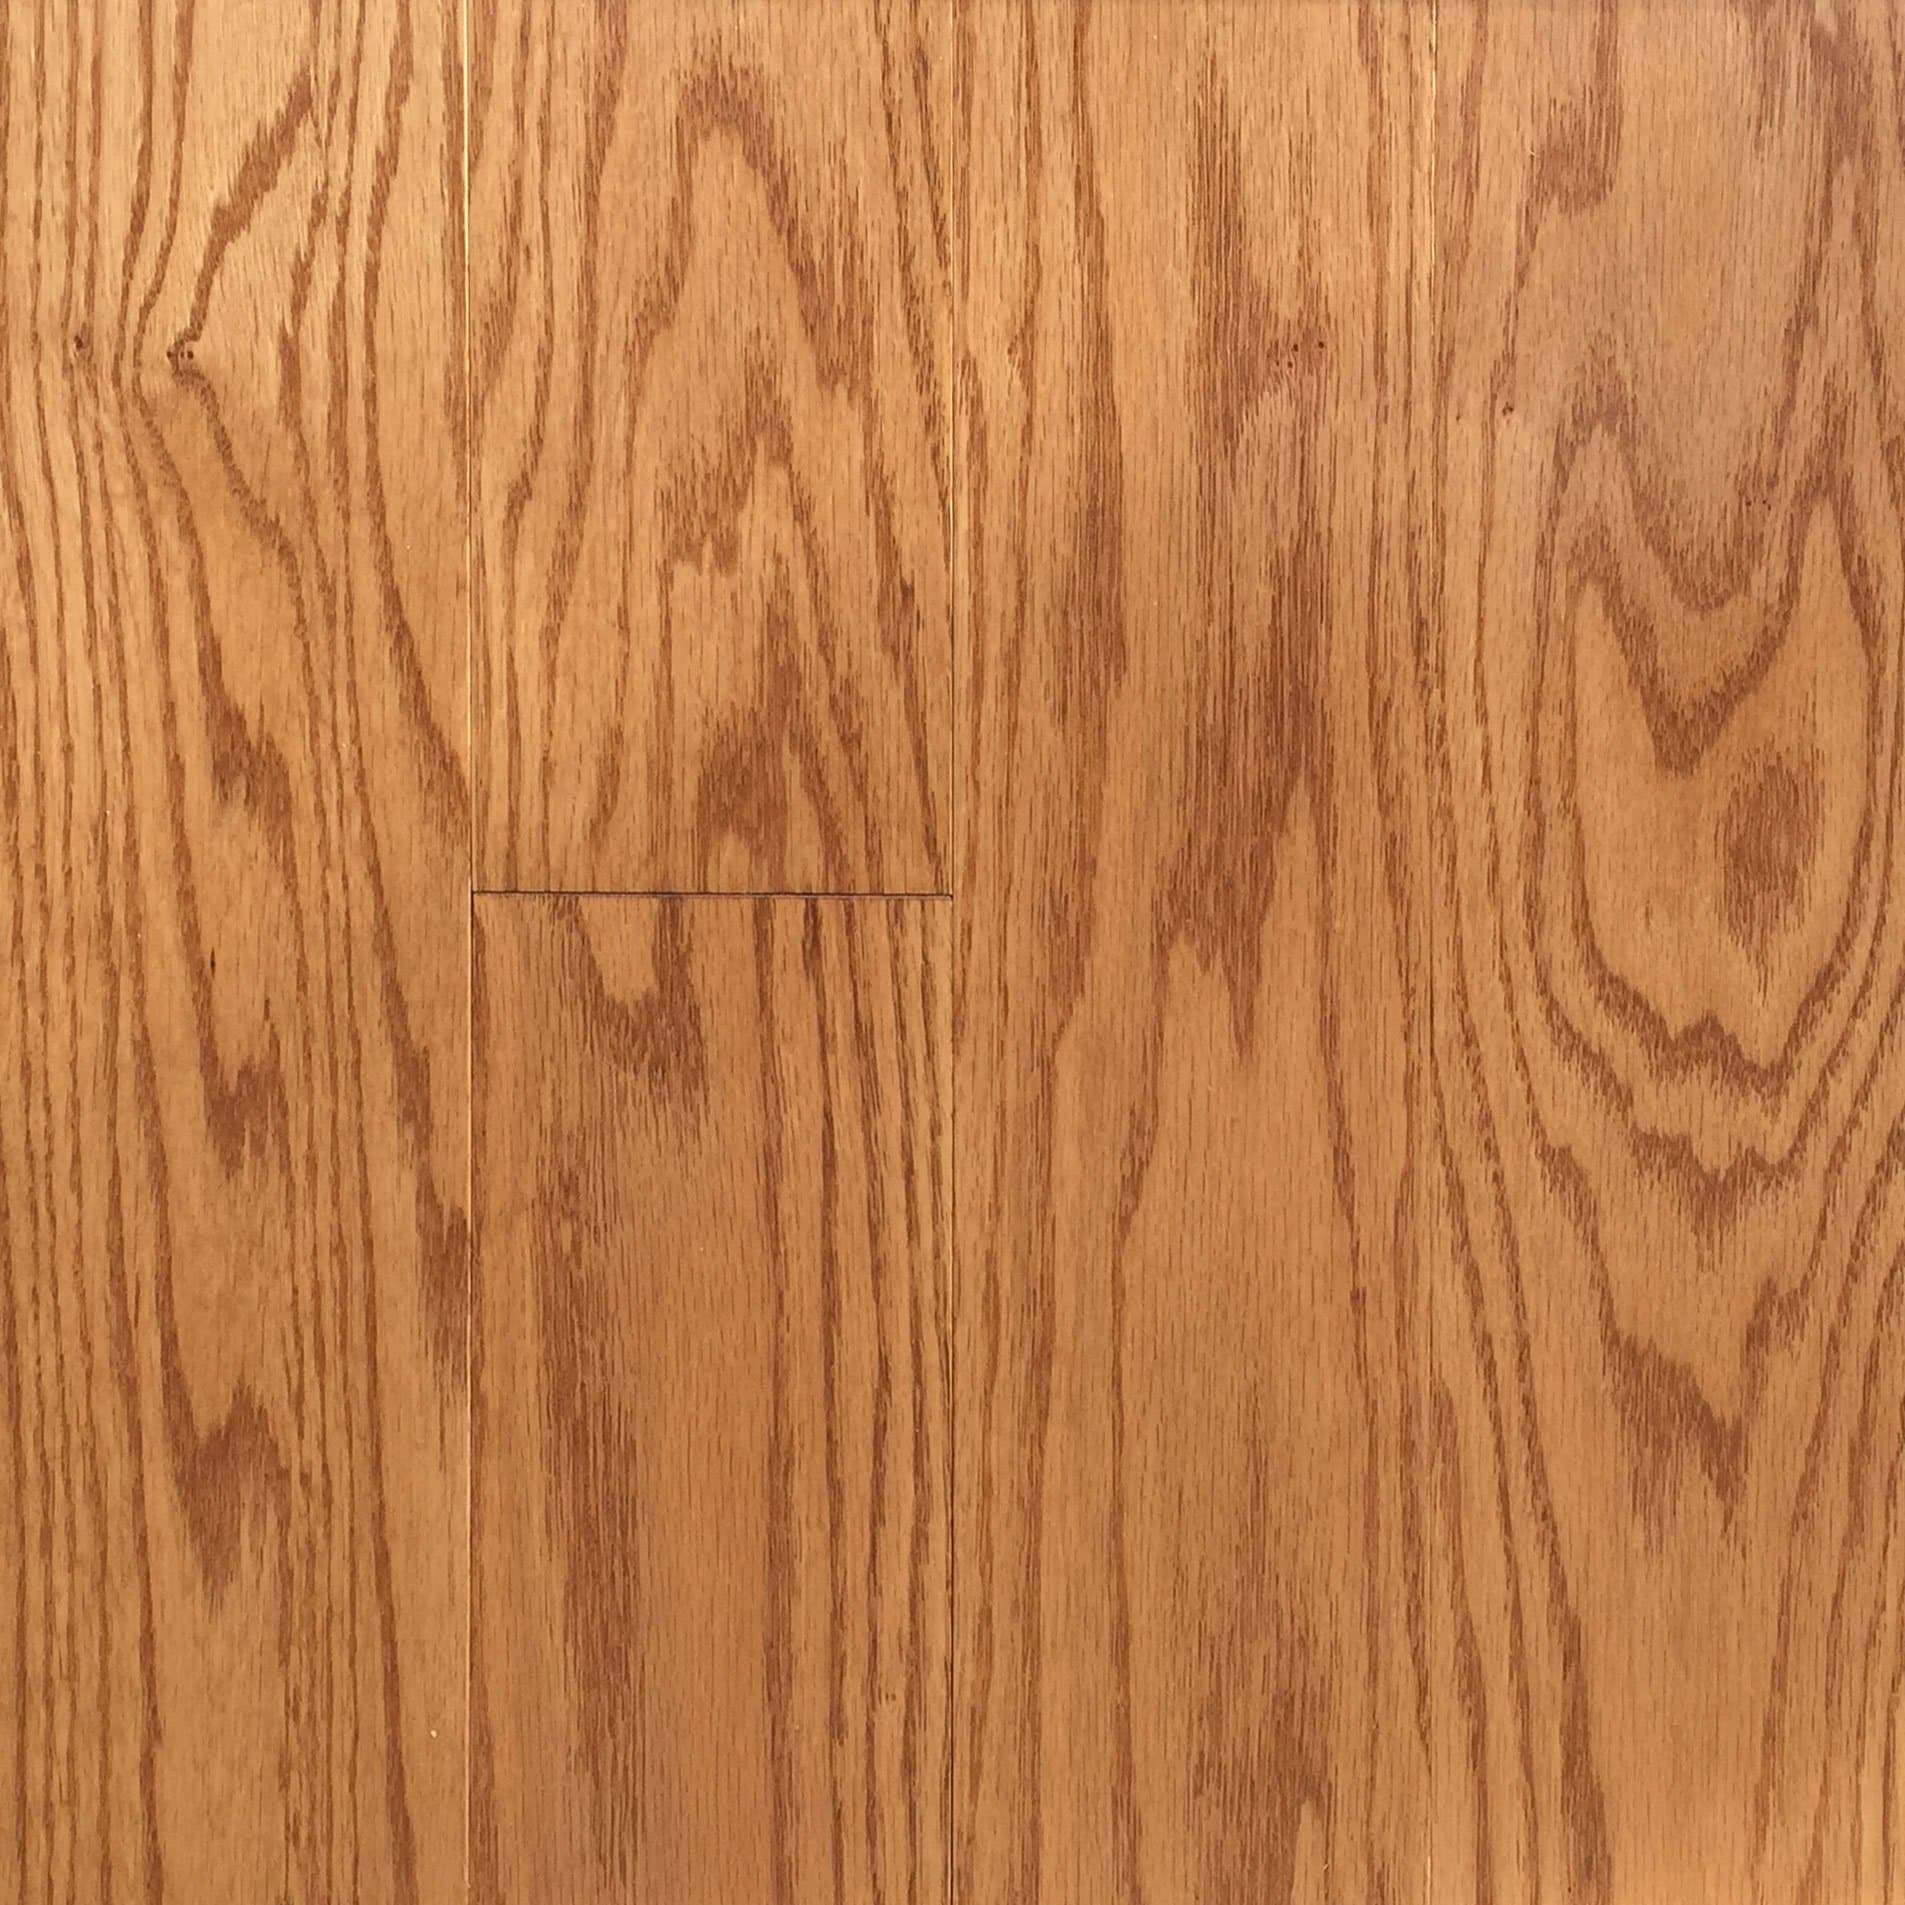 butter-scoch-red-oak